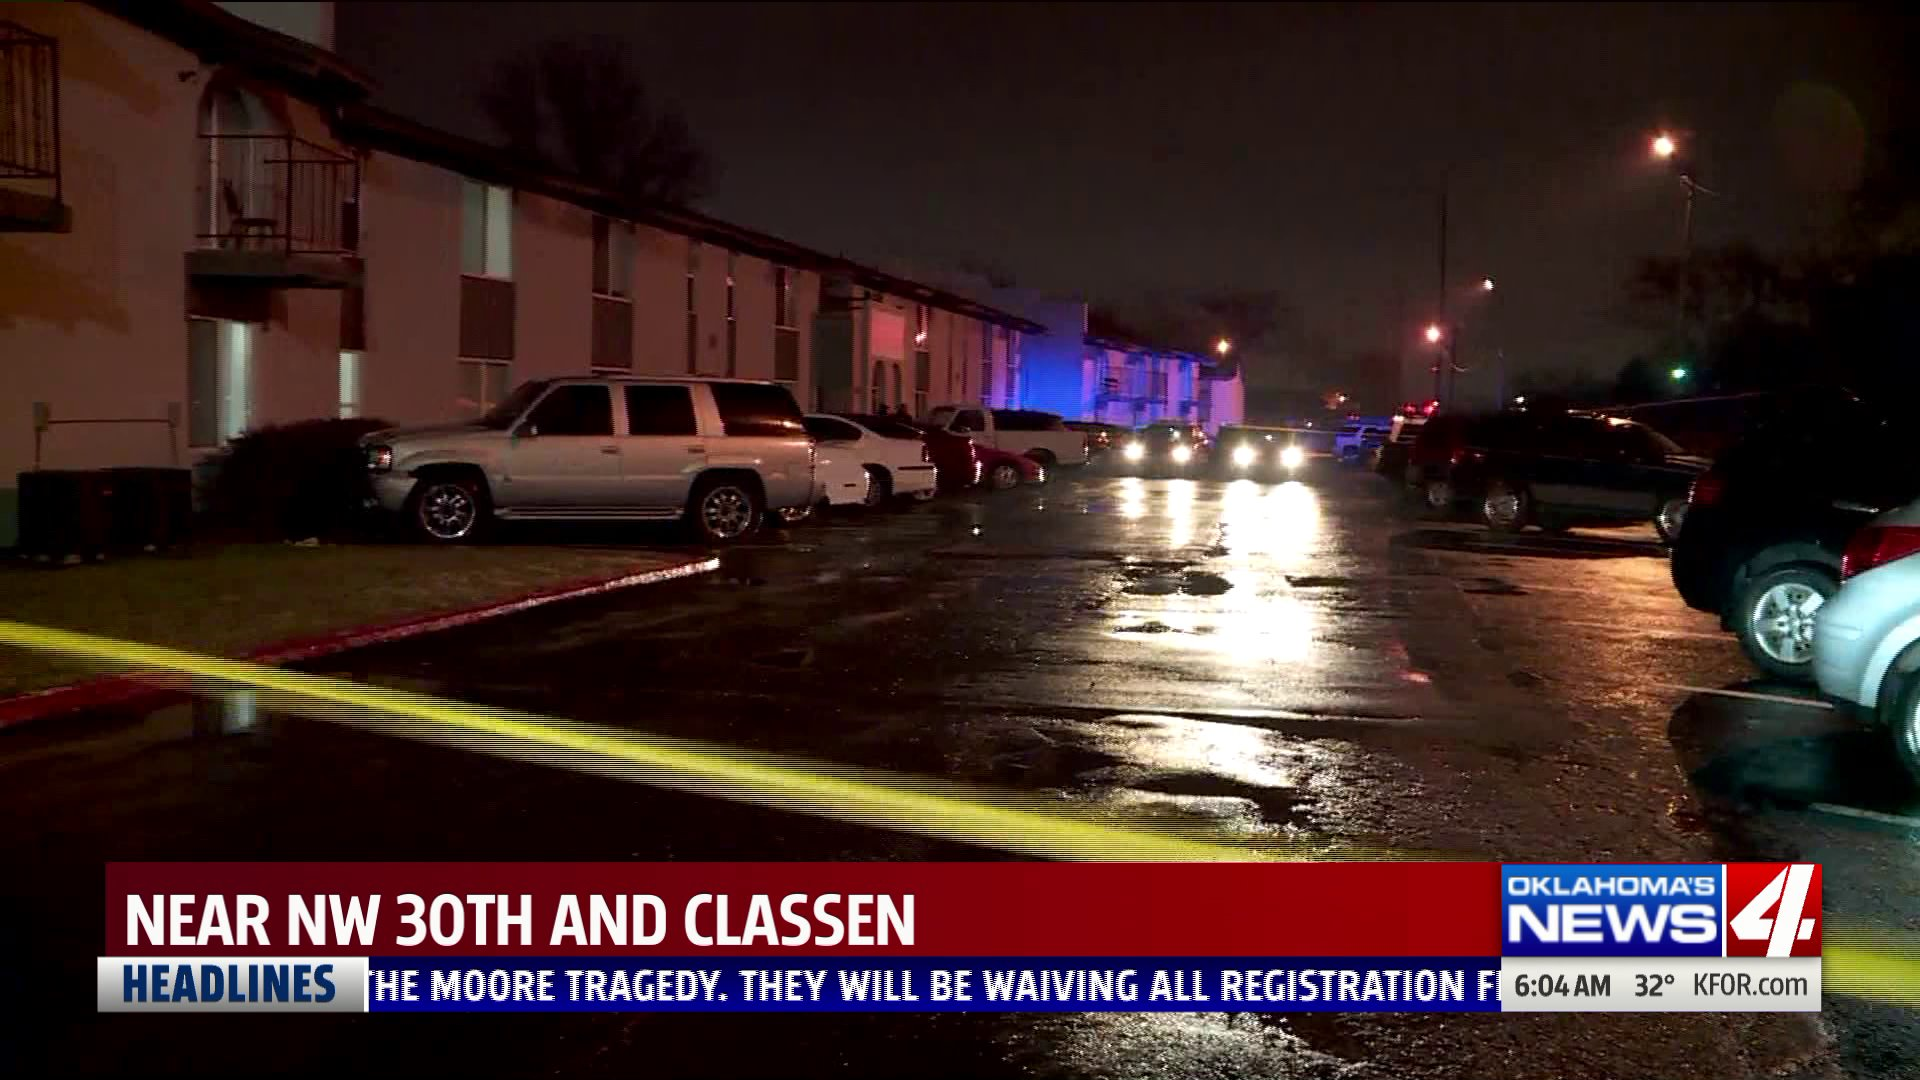 Shooting at NW 30th and Classen